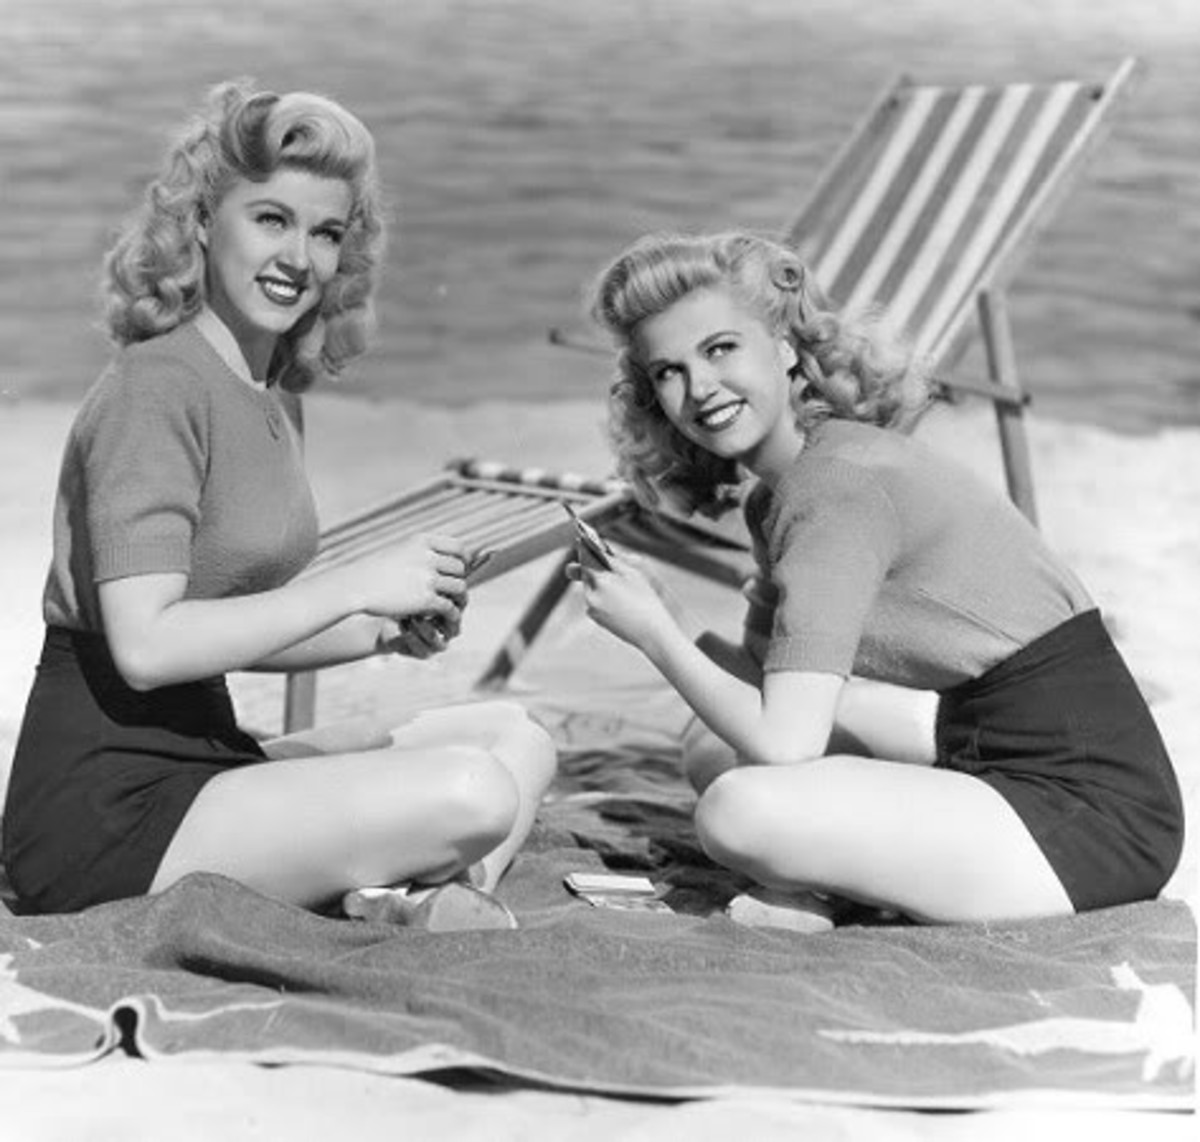 Victory rolls were not only stylish, but patriotic.